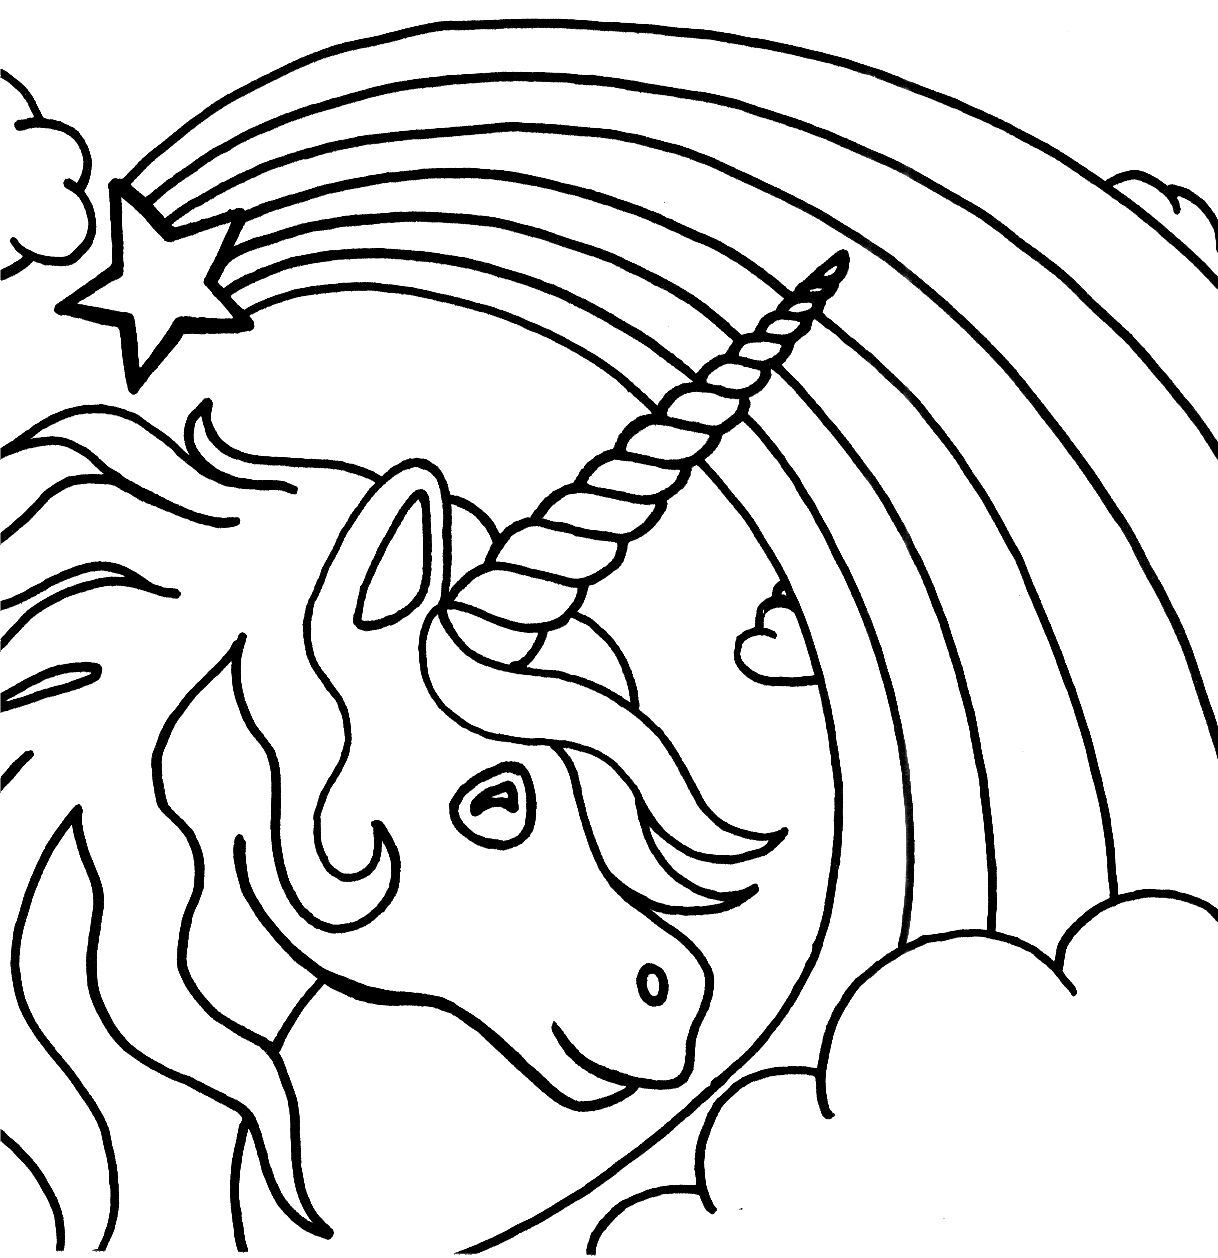 unicorn rainbow coloring pages 01 | Just Because | Pinterest ...